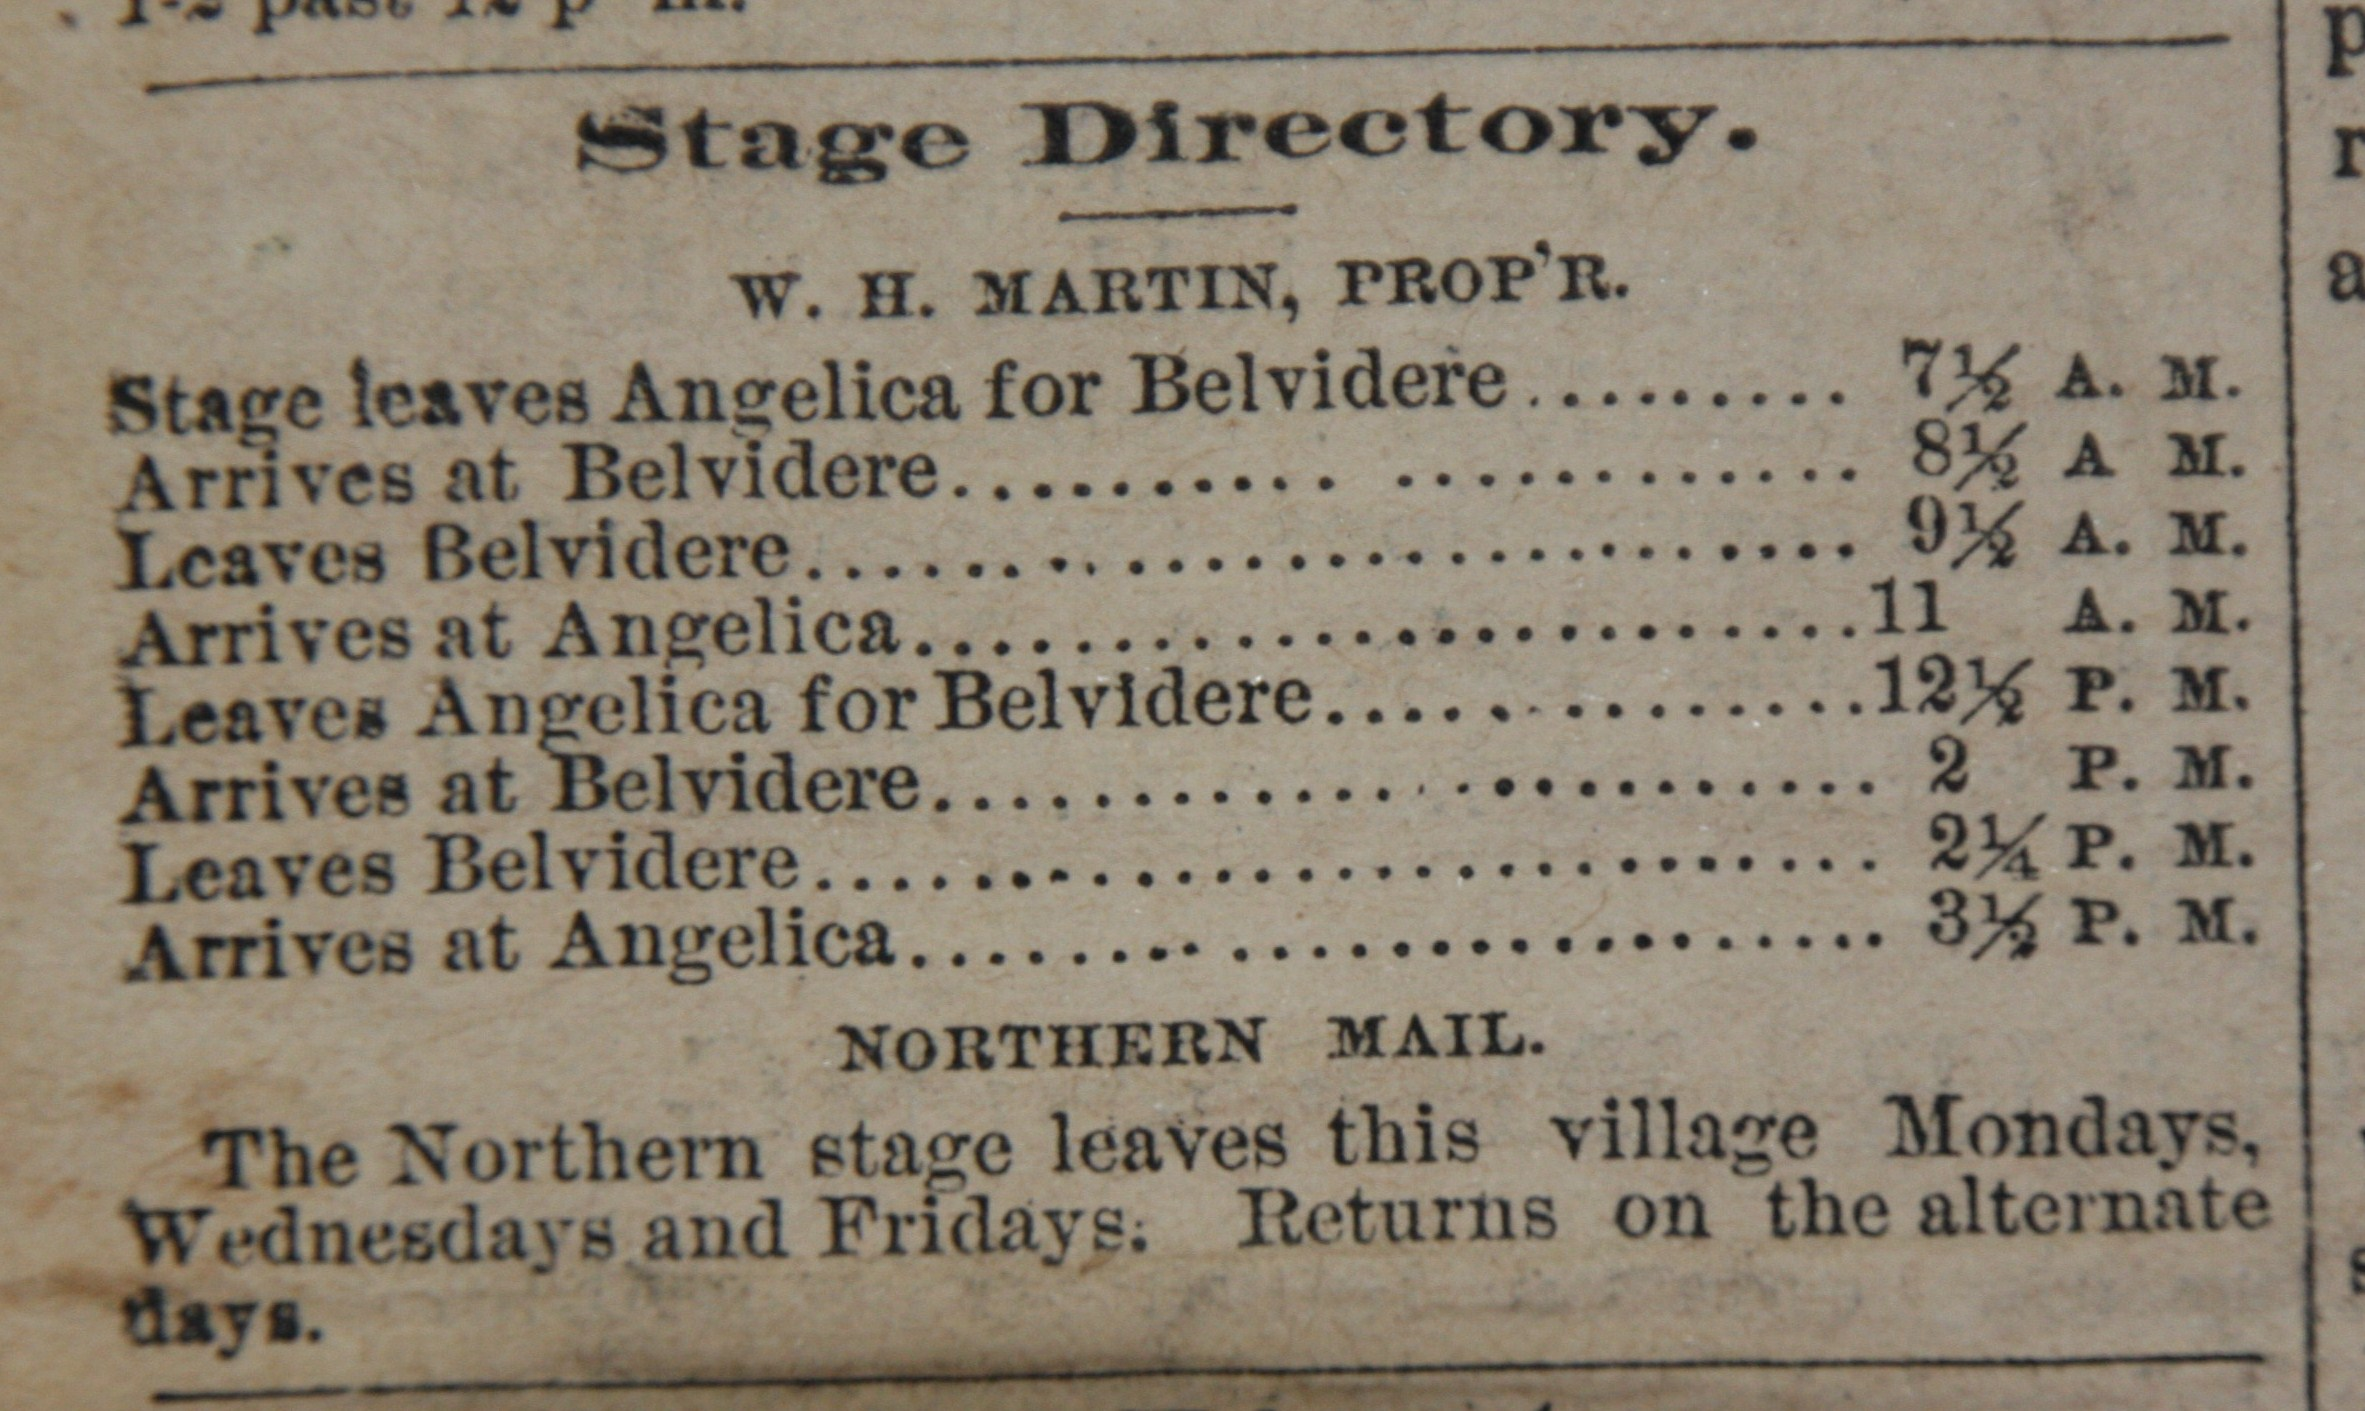 stagecoach_directory_may26_1869